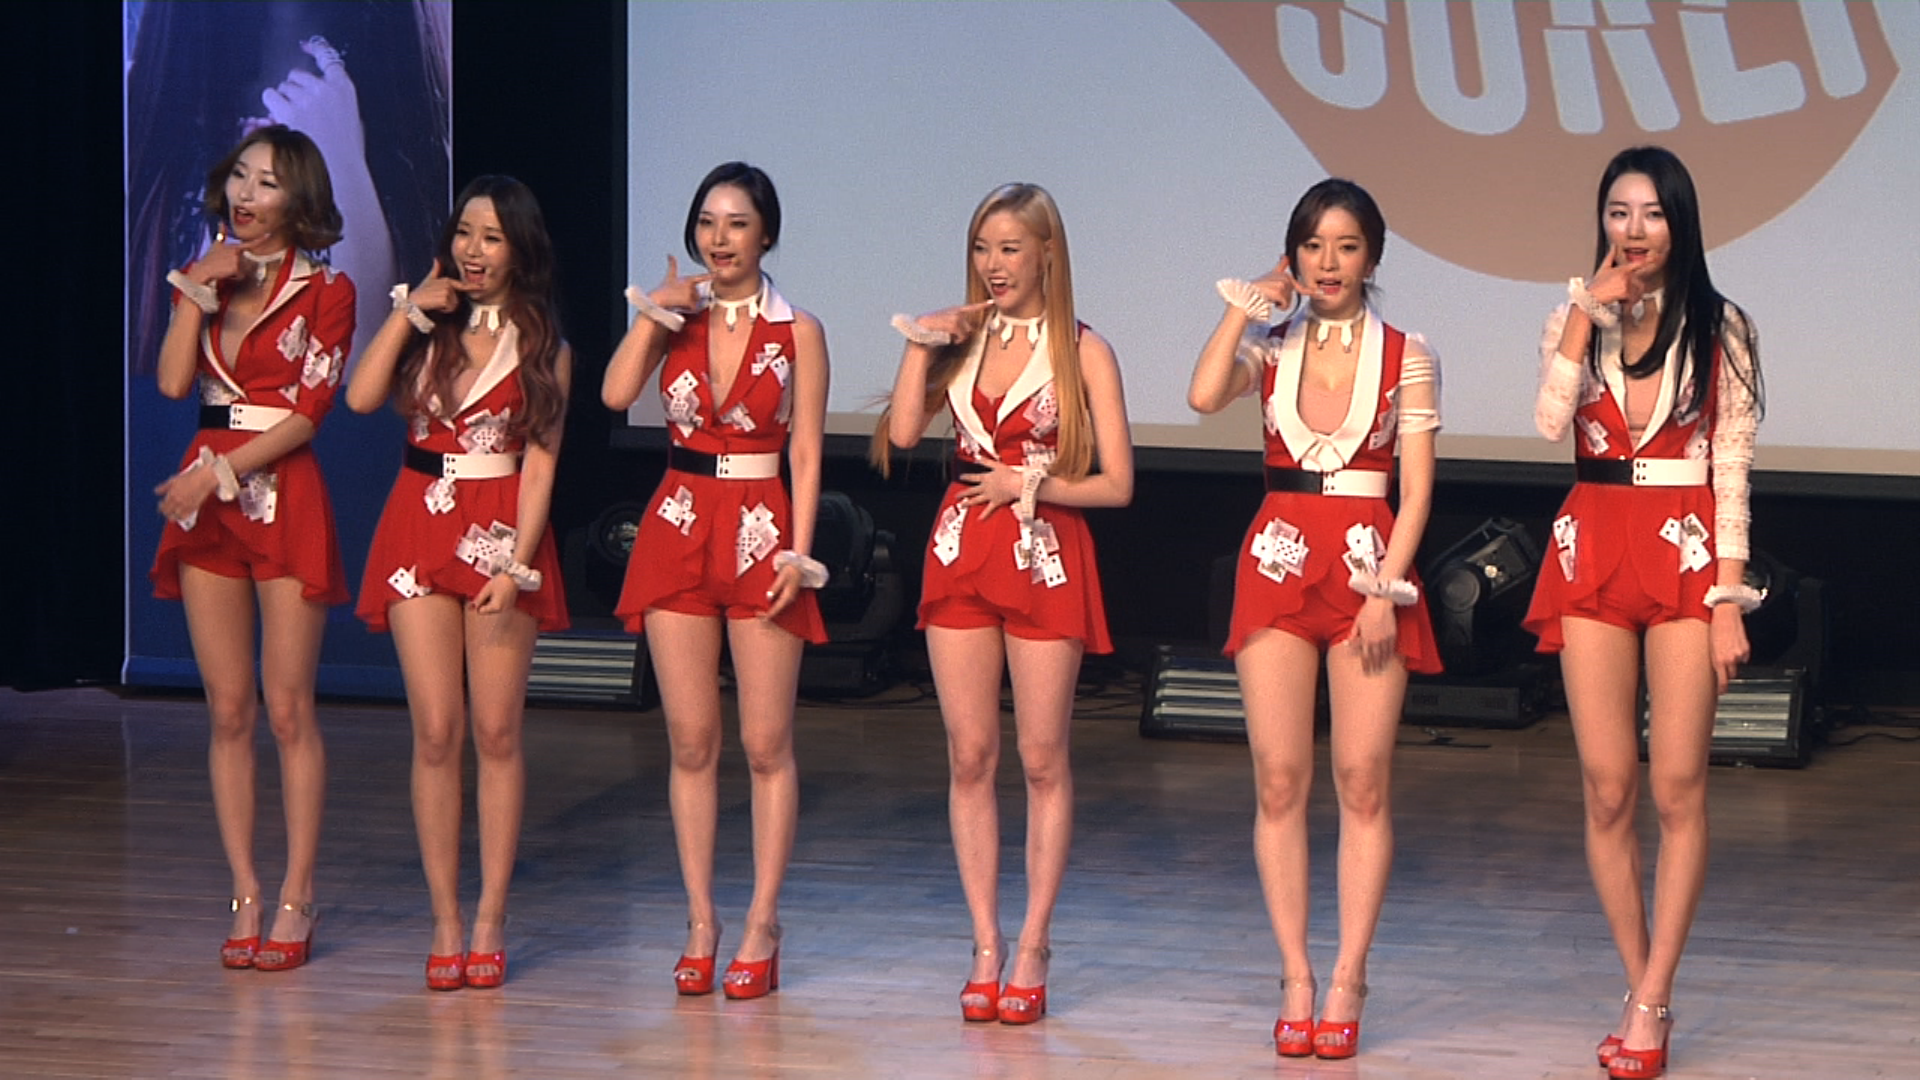 #1080 Showcase of Girl group 'Dal Shabet'